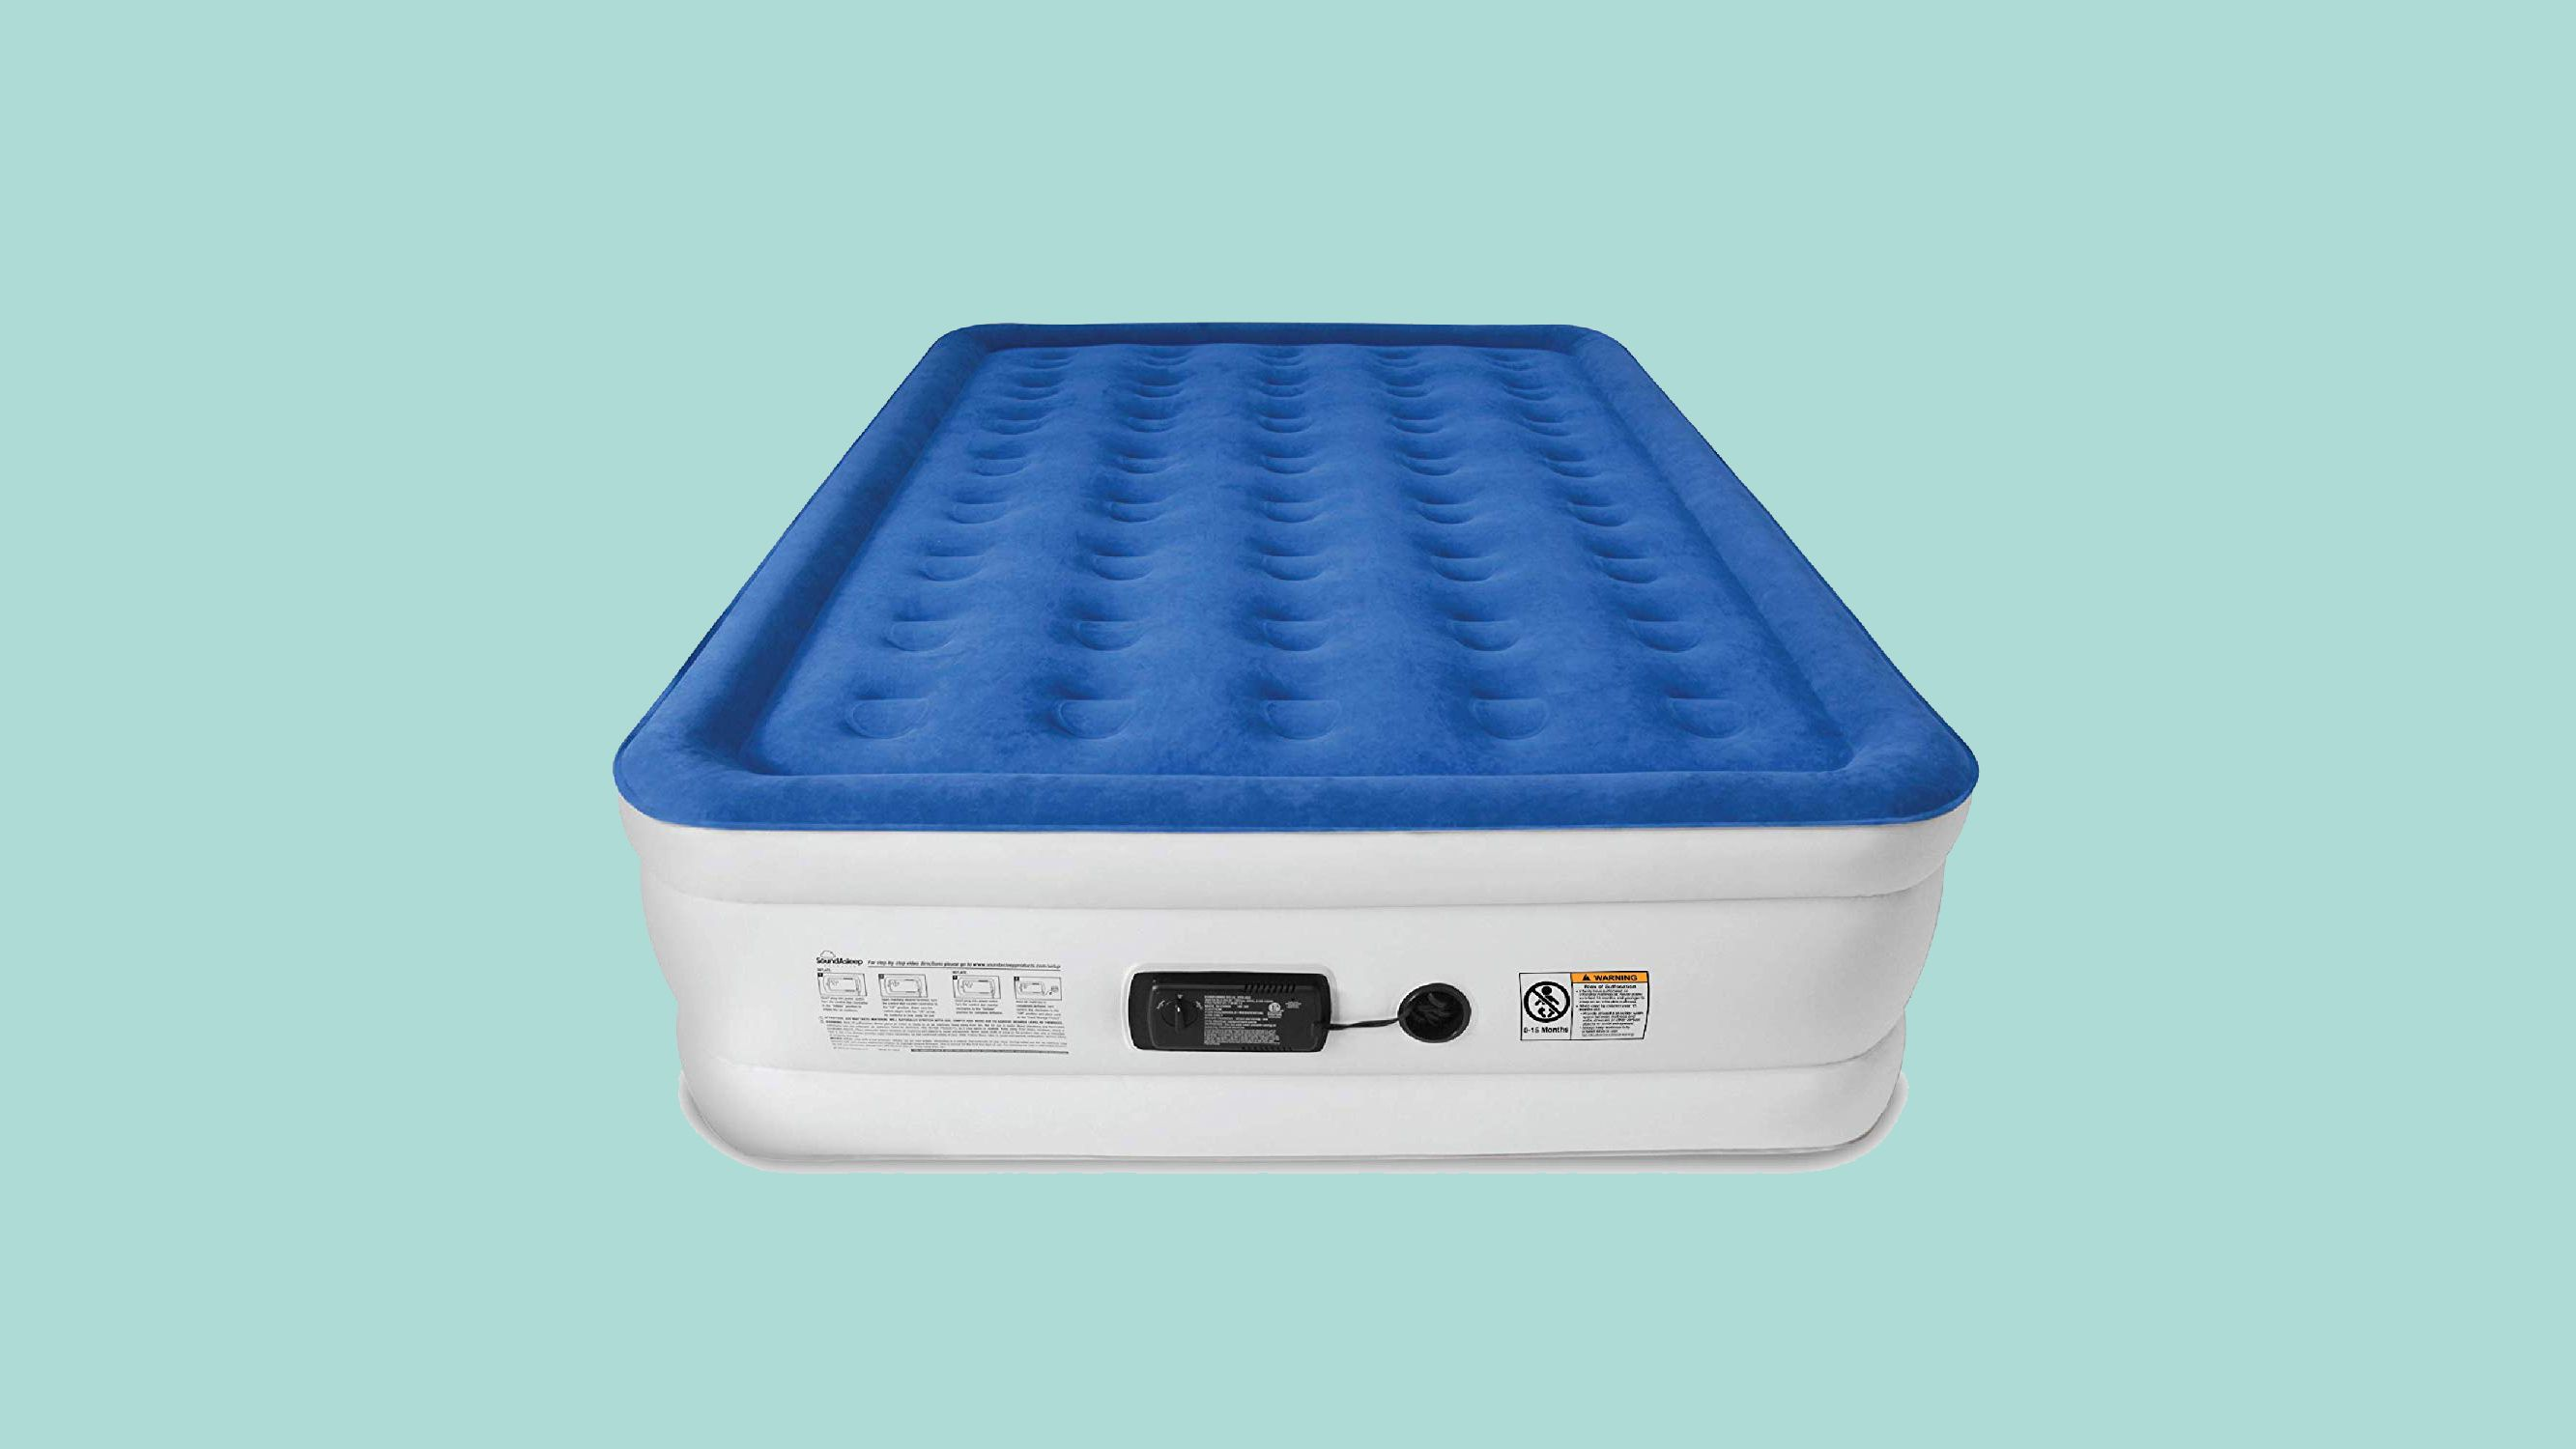 Coleman Comfort bed double camping blow up inflatable air bed airbed